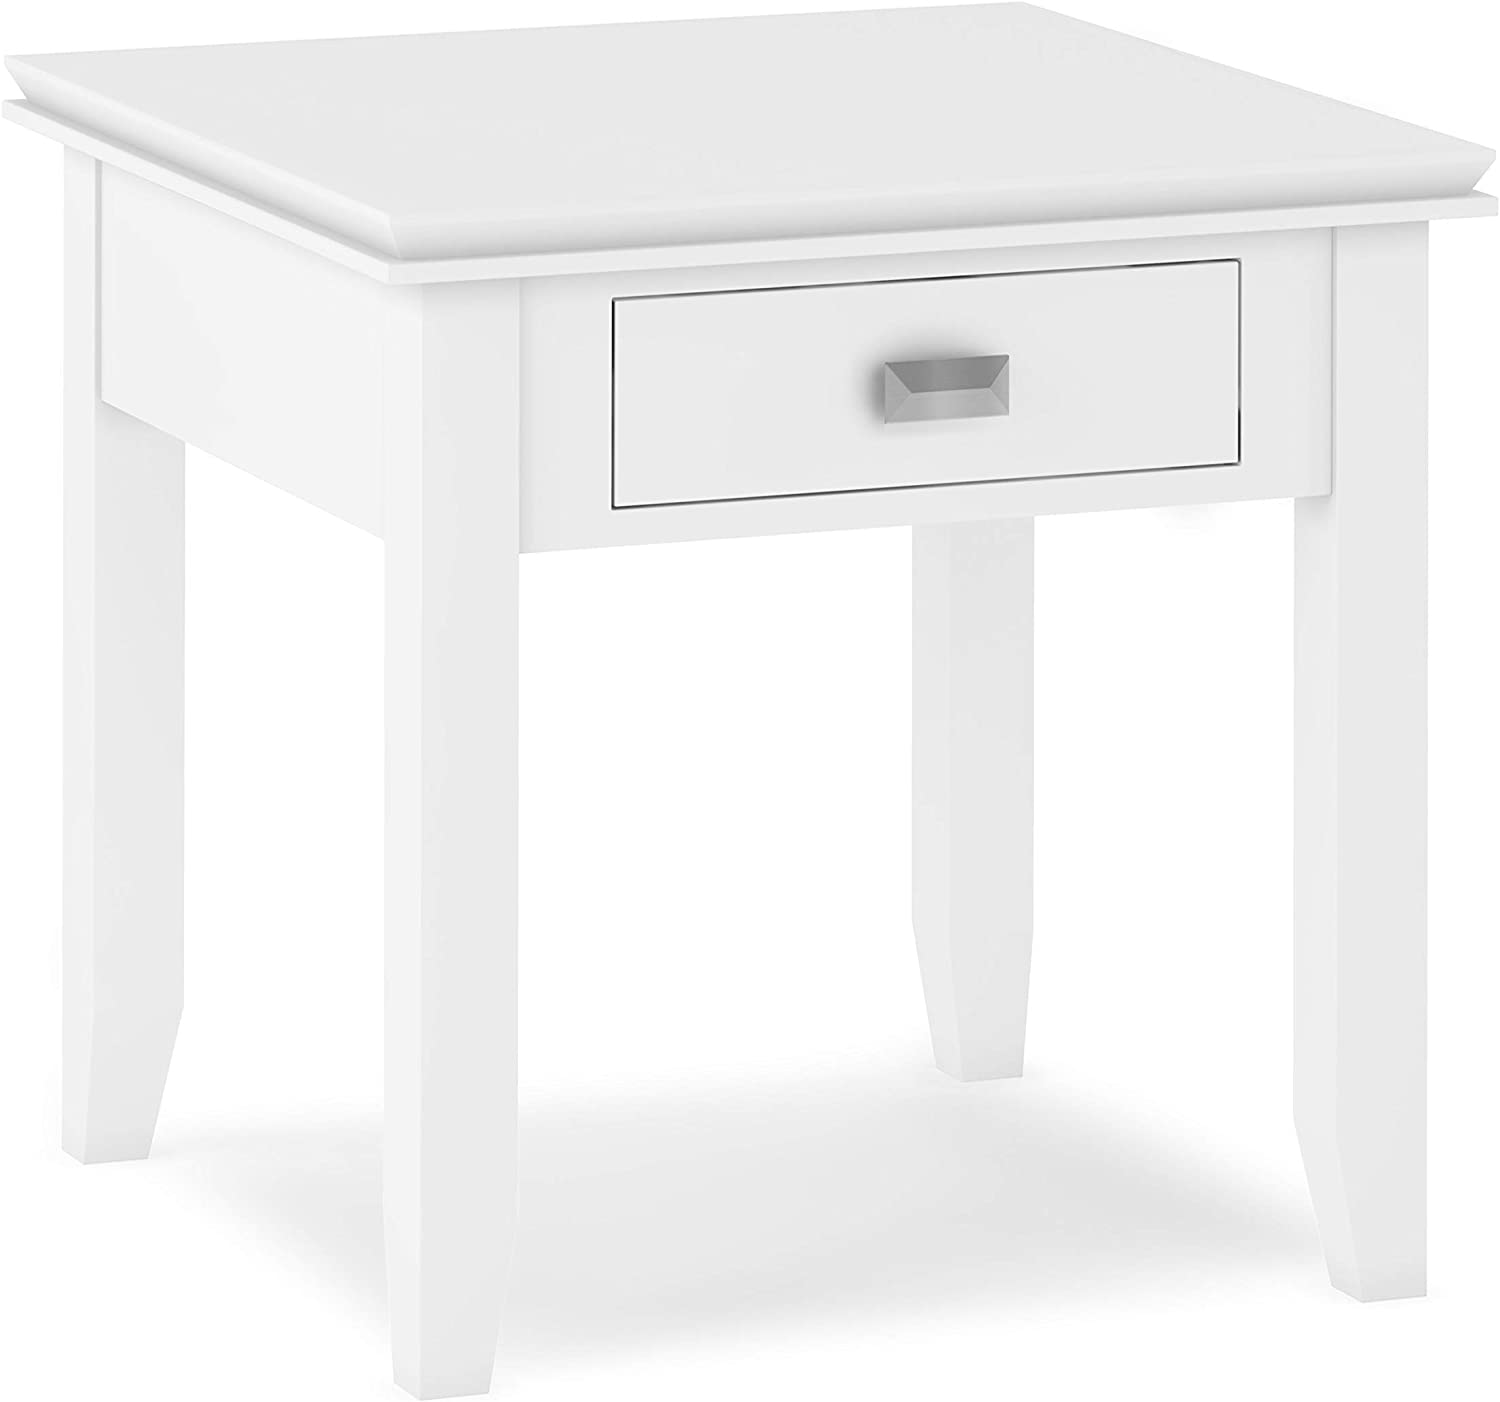 SIMPLIHOME Artisan SOLID WOOD 21 inch wide Square Contemporary End Side Table in White with Storage, 1 Drawer, for the Living Room and Bedroom